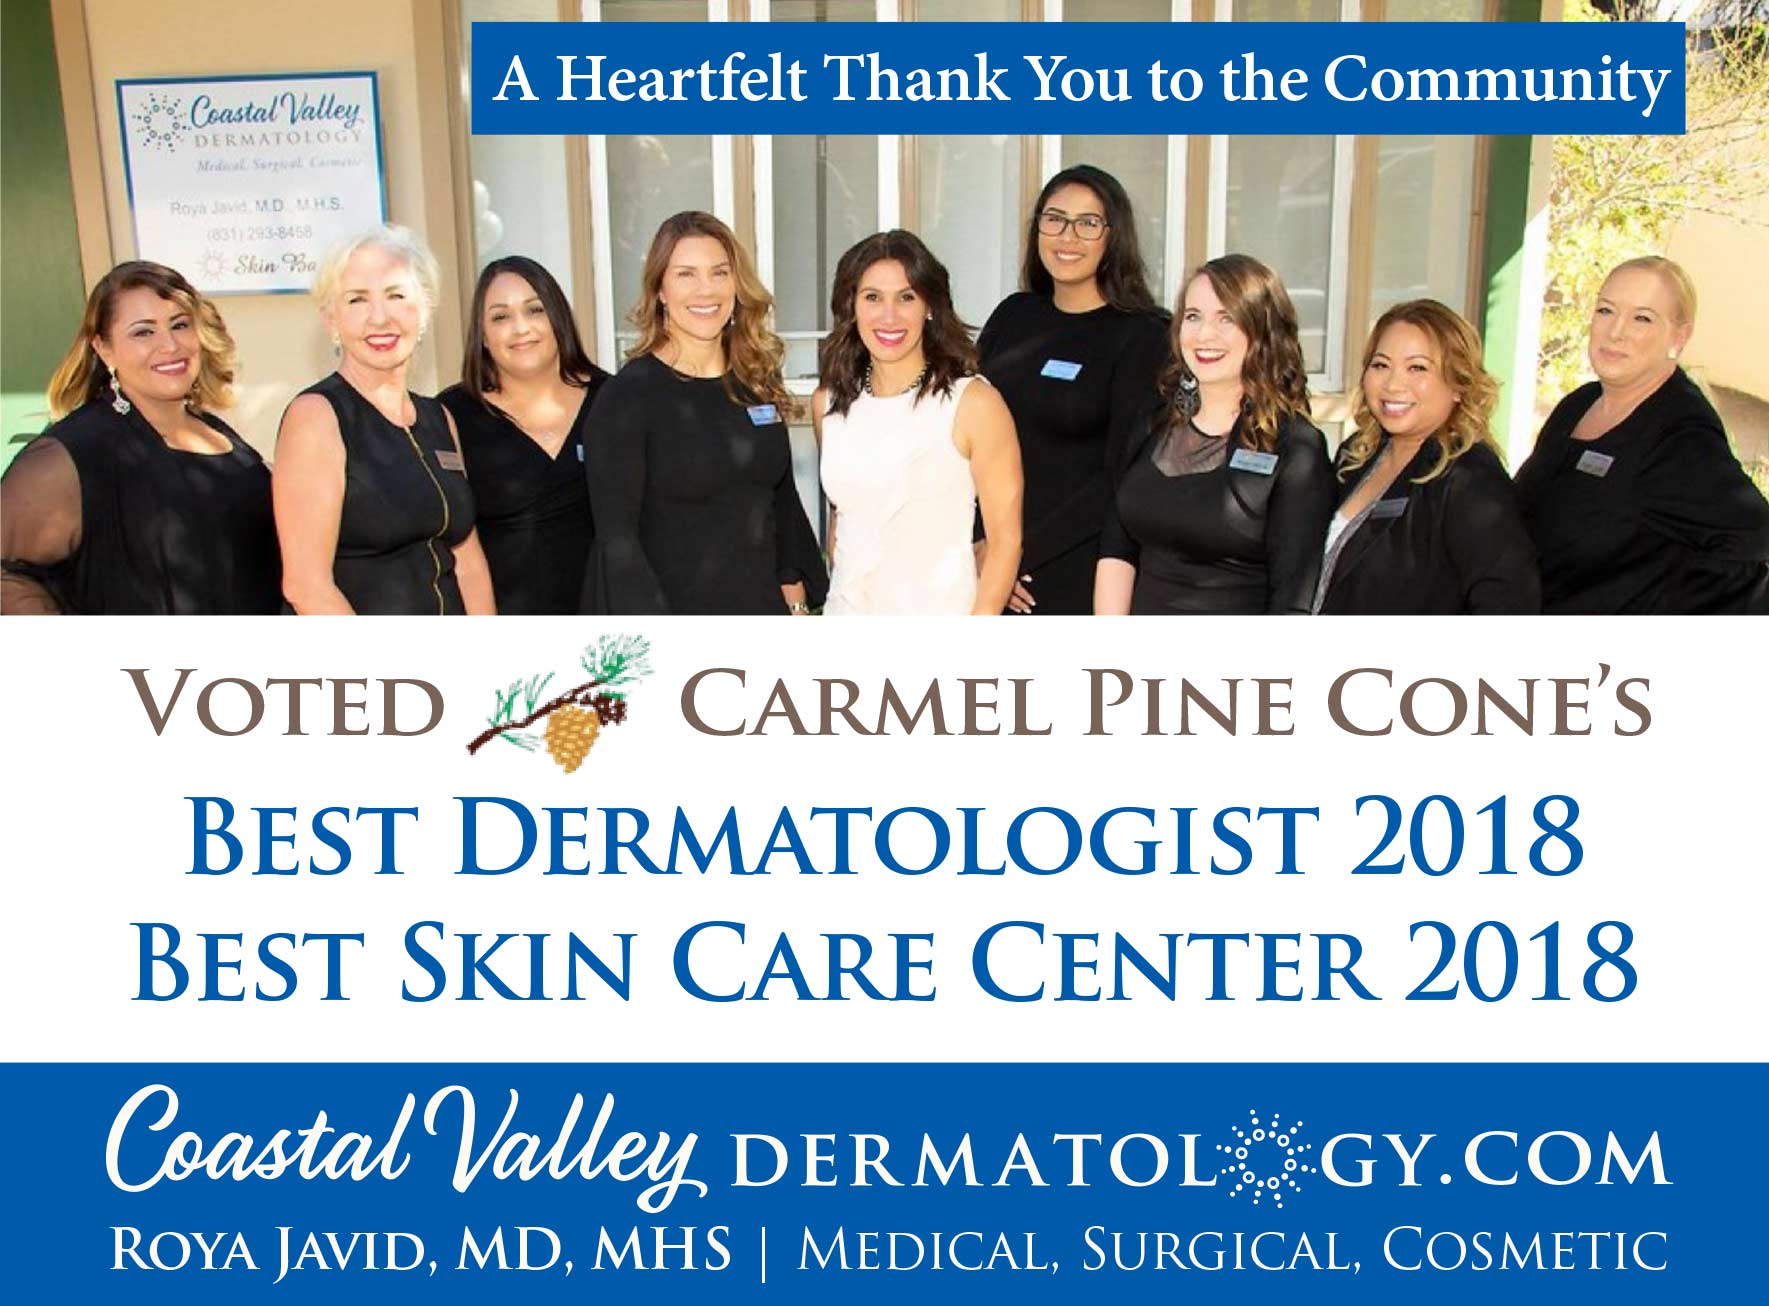 coastal-valley-dermatology-carmel-monterey-best-dermatologist-photo